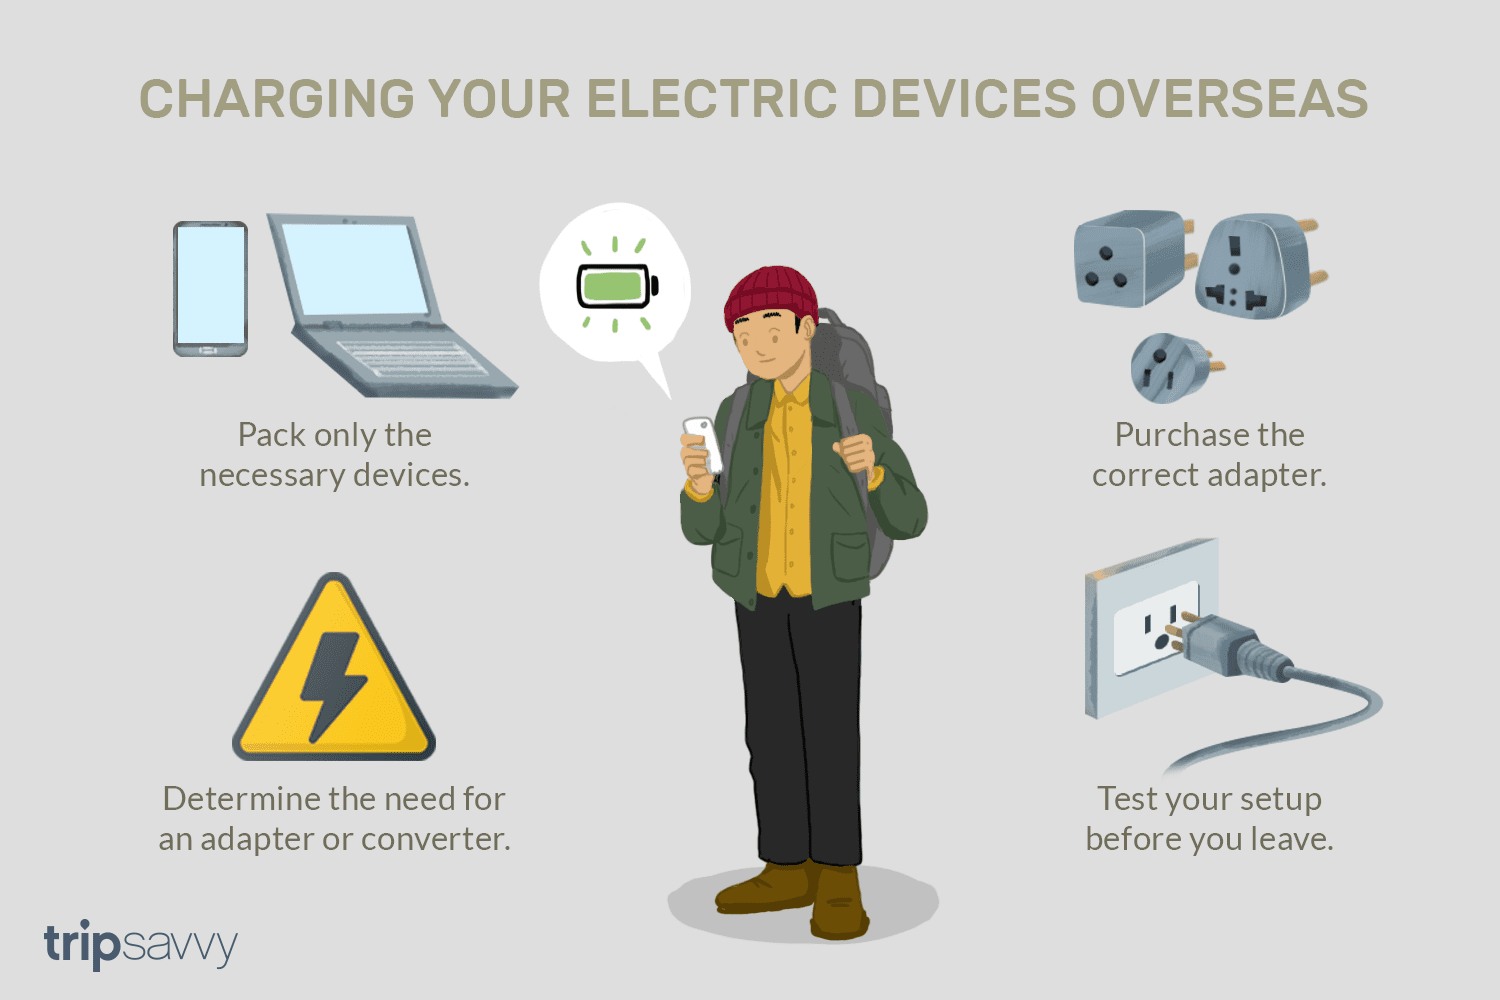 How to Charge Your Electronic Devices Overseas